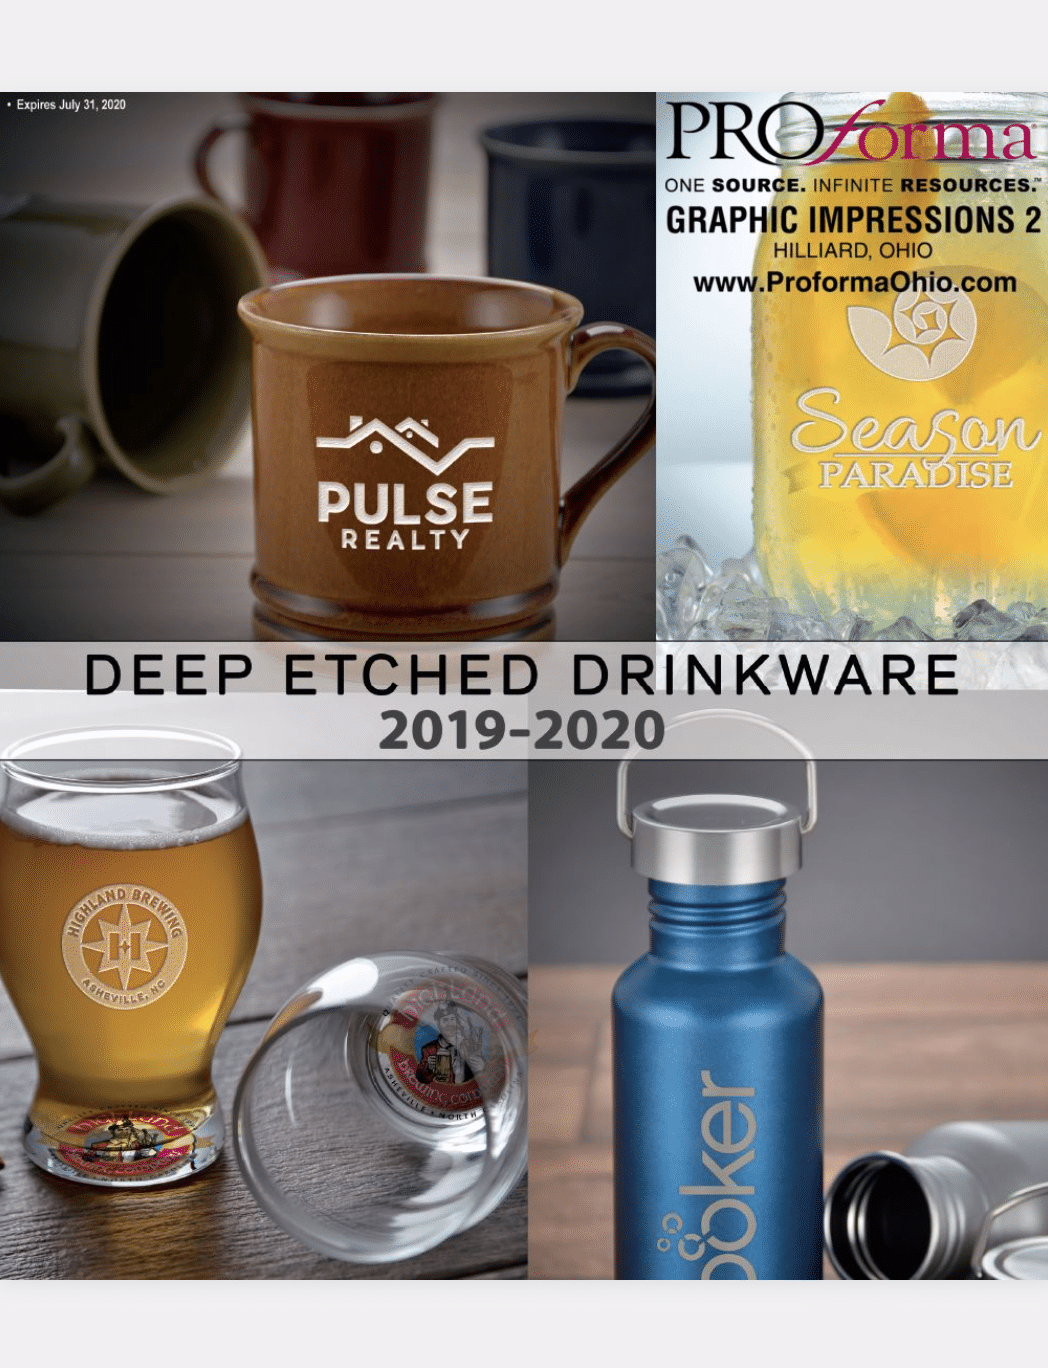 promotional products and drinkware in ohio